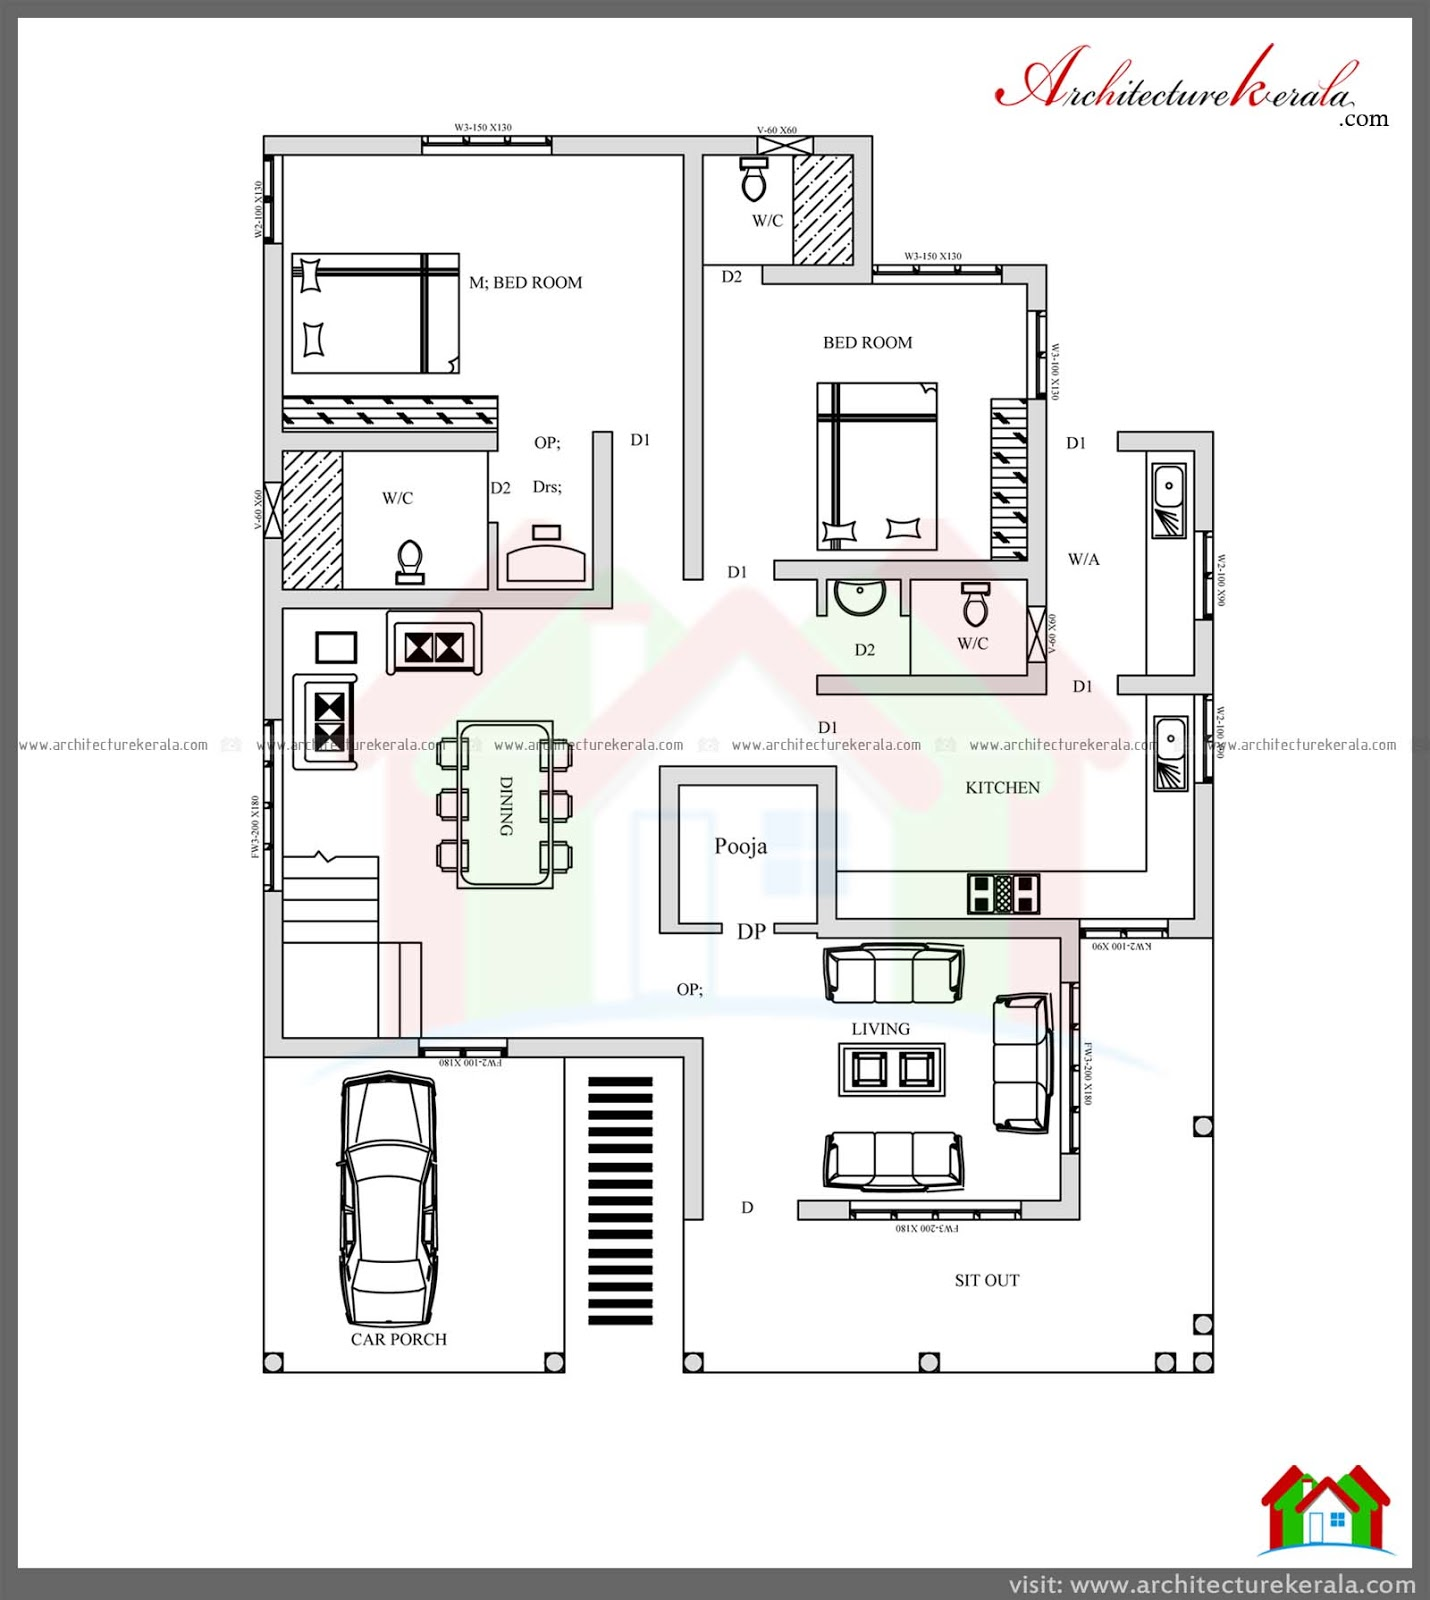 4 bed house plan with pooja room architecture kerala for Kerala style house plans with cost